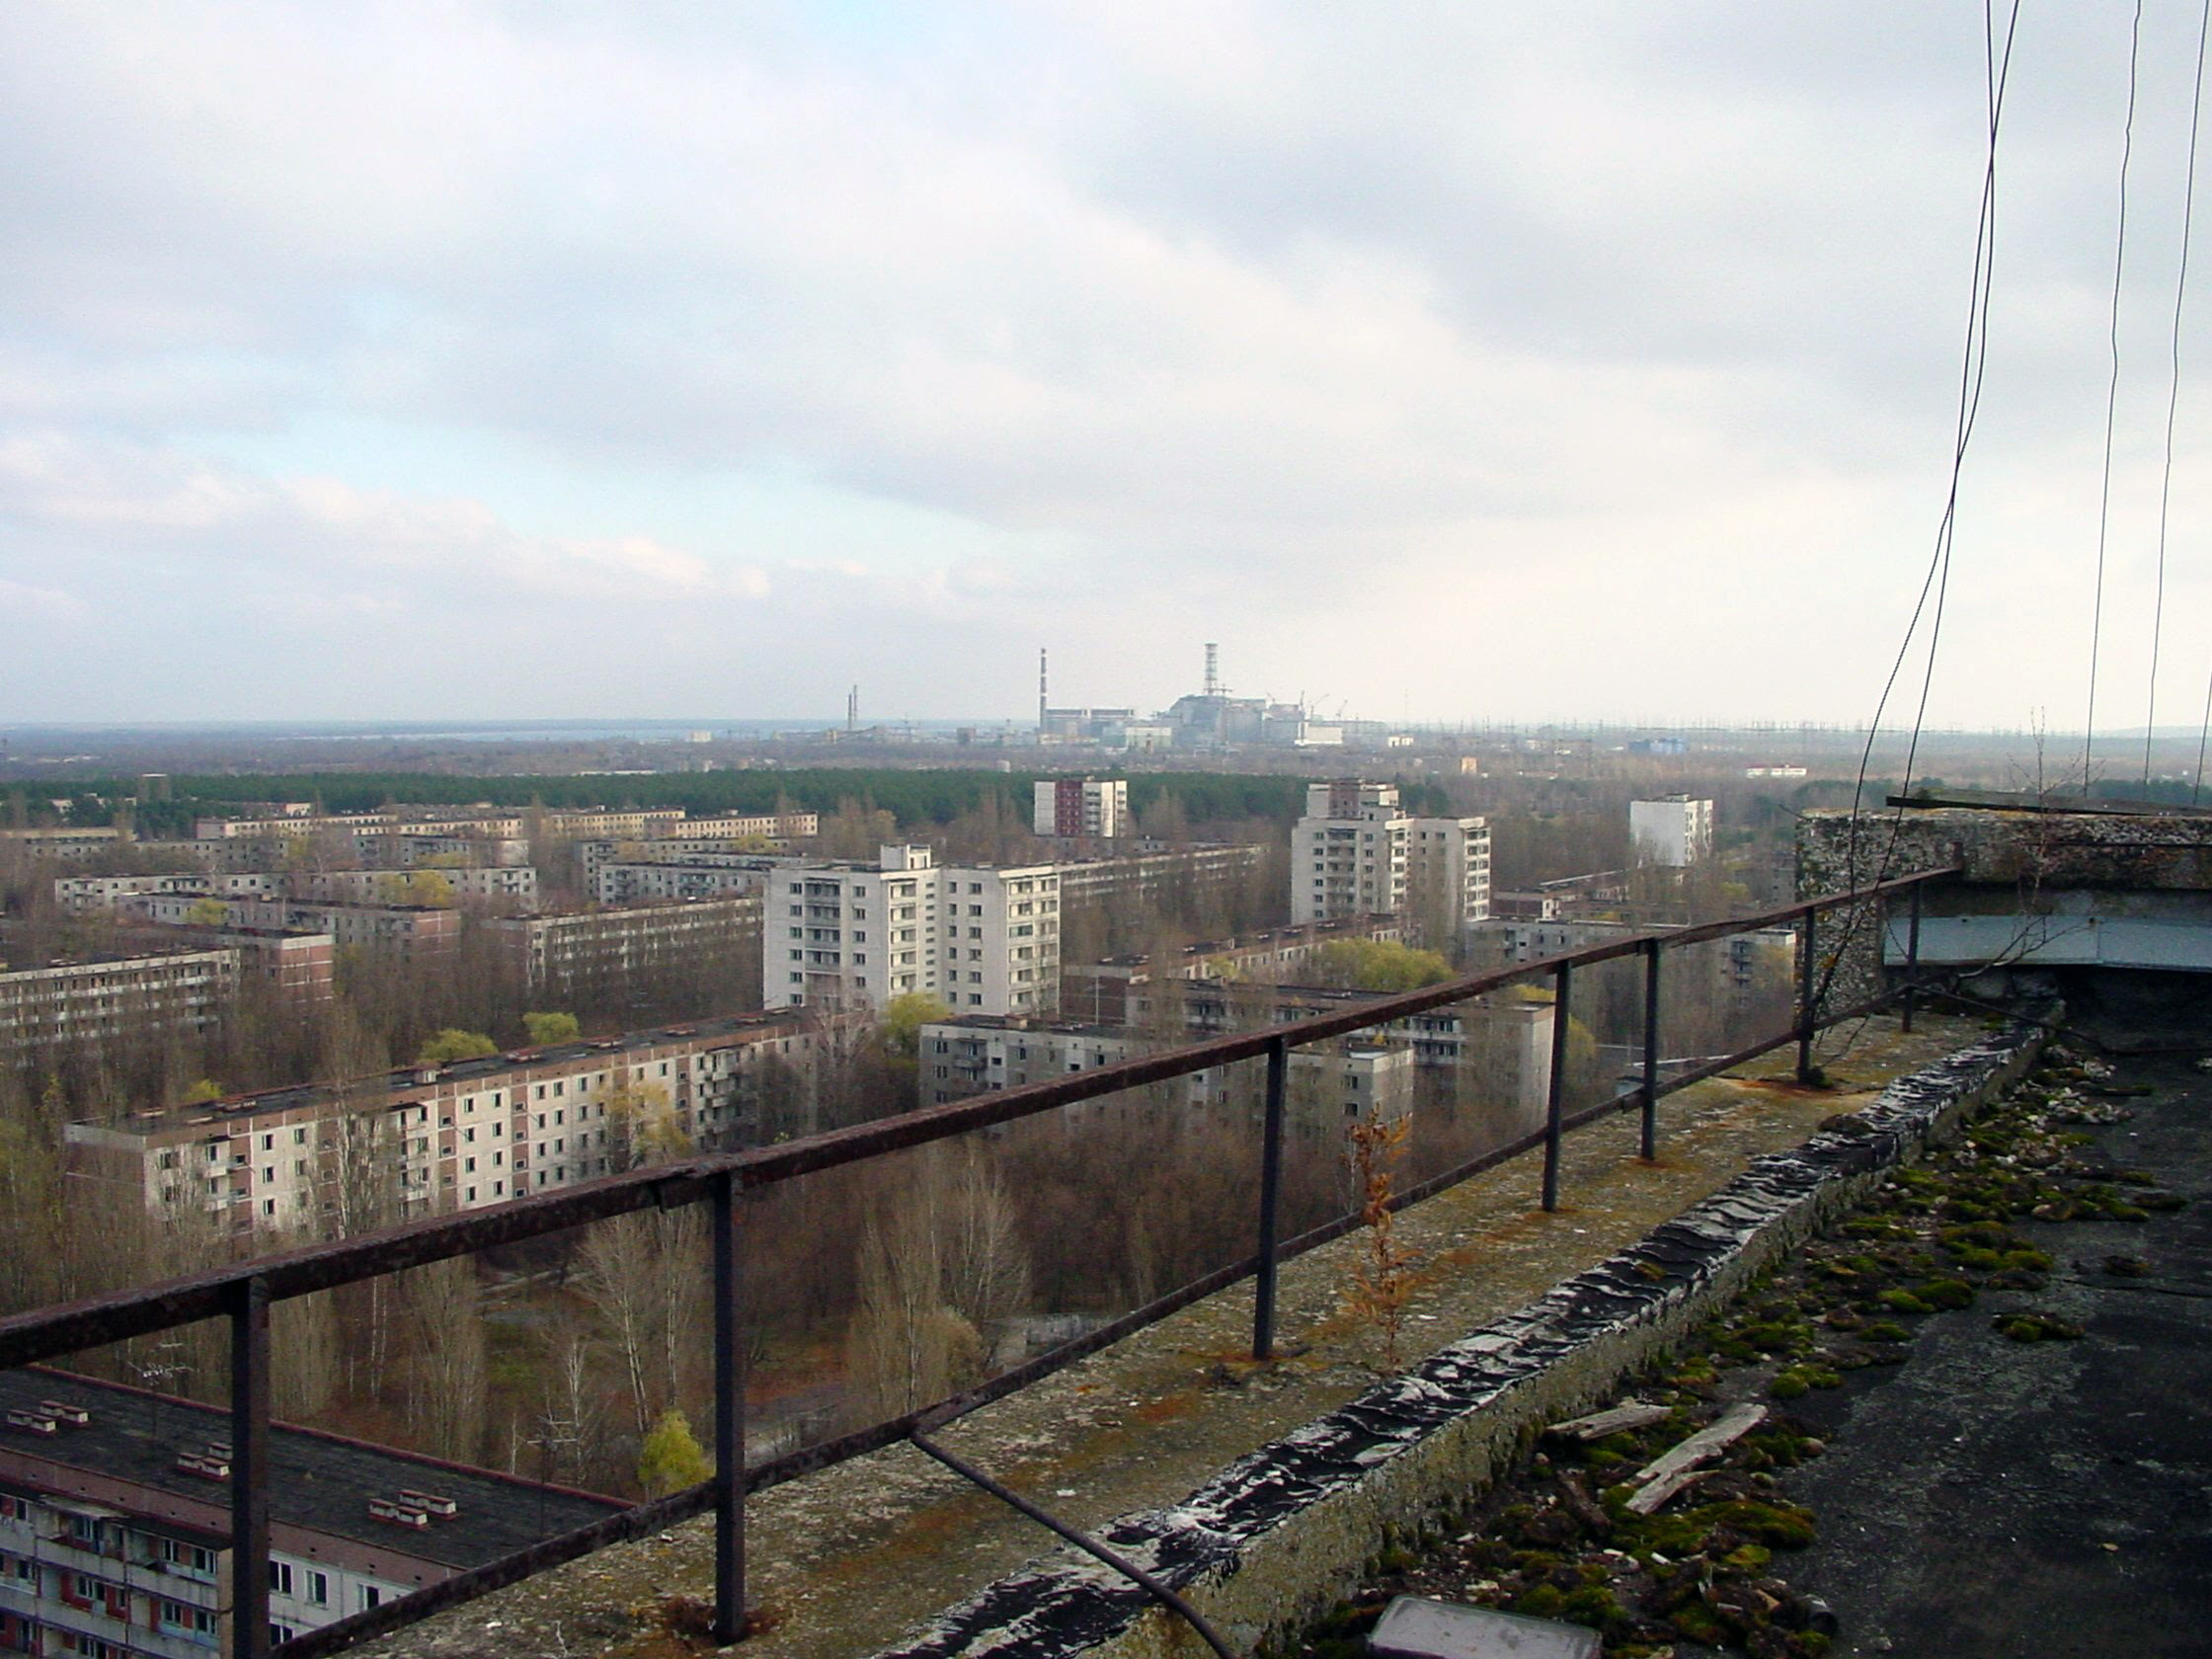 http://upload.wikimedia.org/wikipedia/commons/6/6e/View_of_Chernobyl_taken_from_Pripyat.JPG